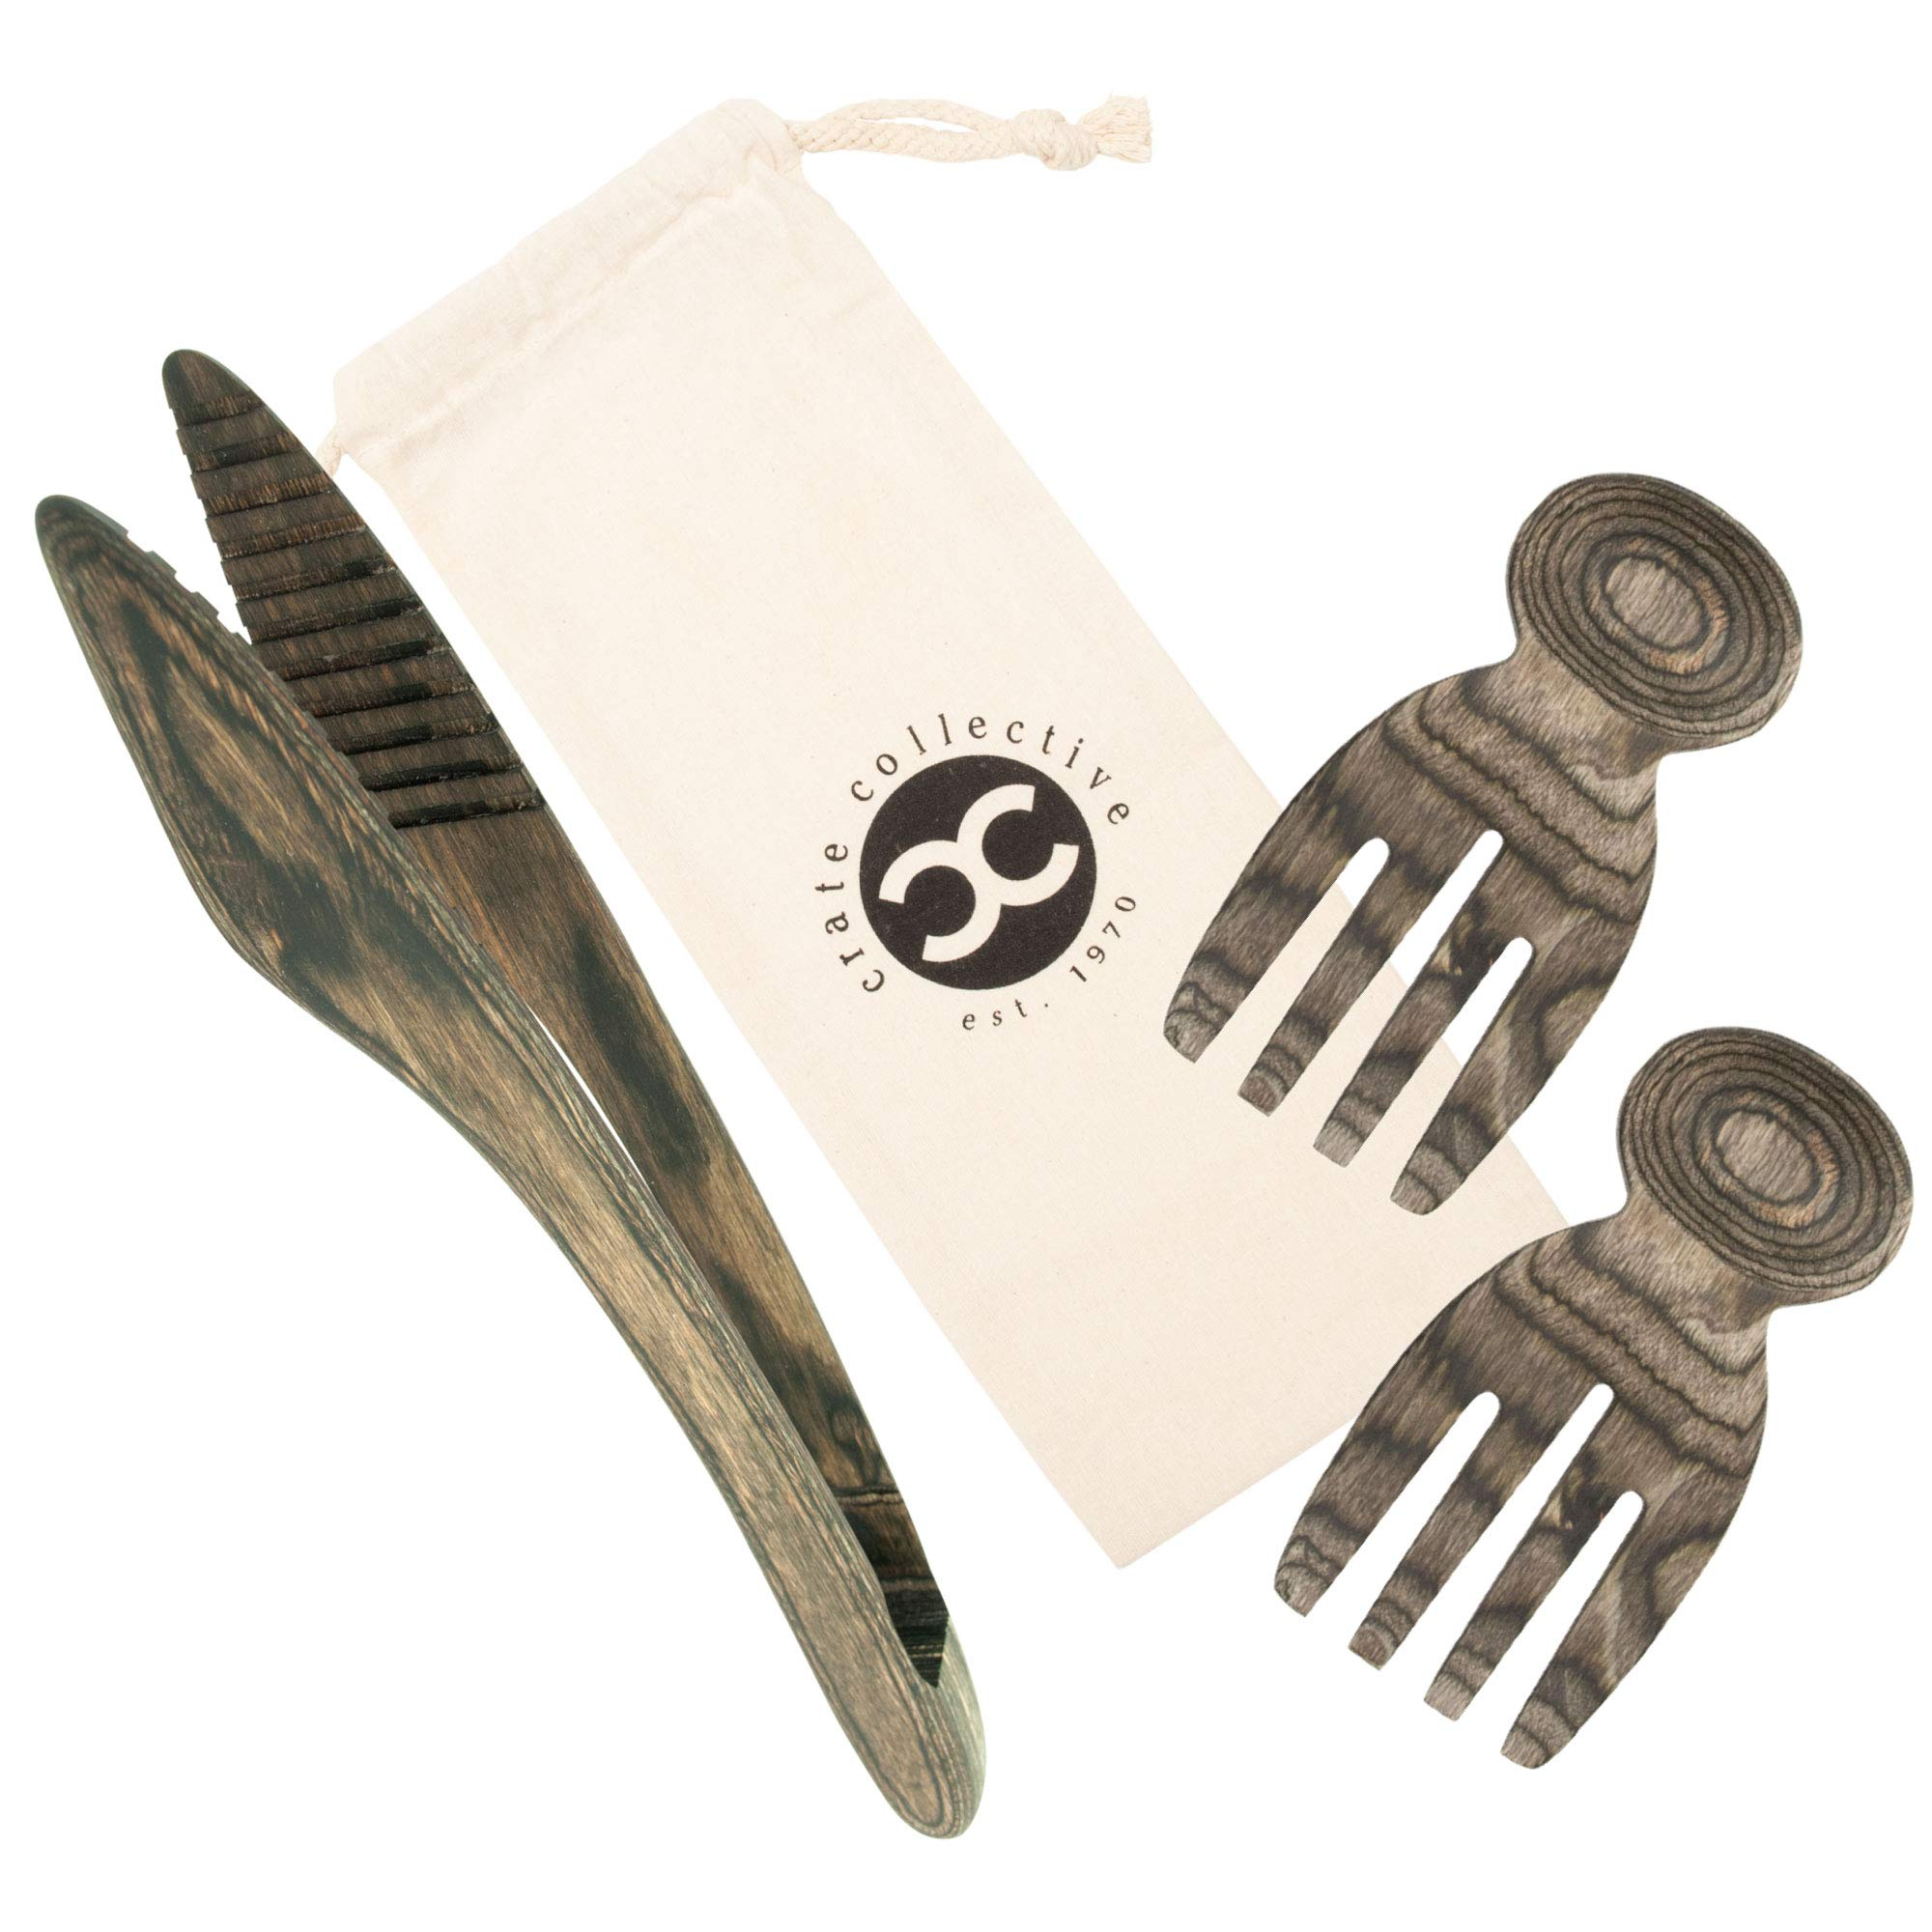 Crate Collective Salad Hands & Salad Tongs - Exotic Pakkawood Kitchen Salad Utensil Set For Serving & Tossing - Beautiful Wooden Construction + 100% Eco-friendly, BPA Free & Easy to Clean (Beechnut)